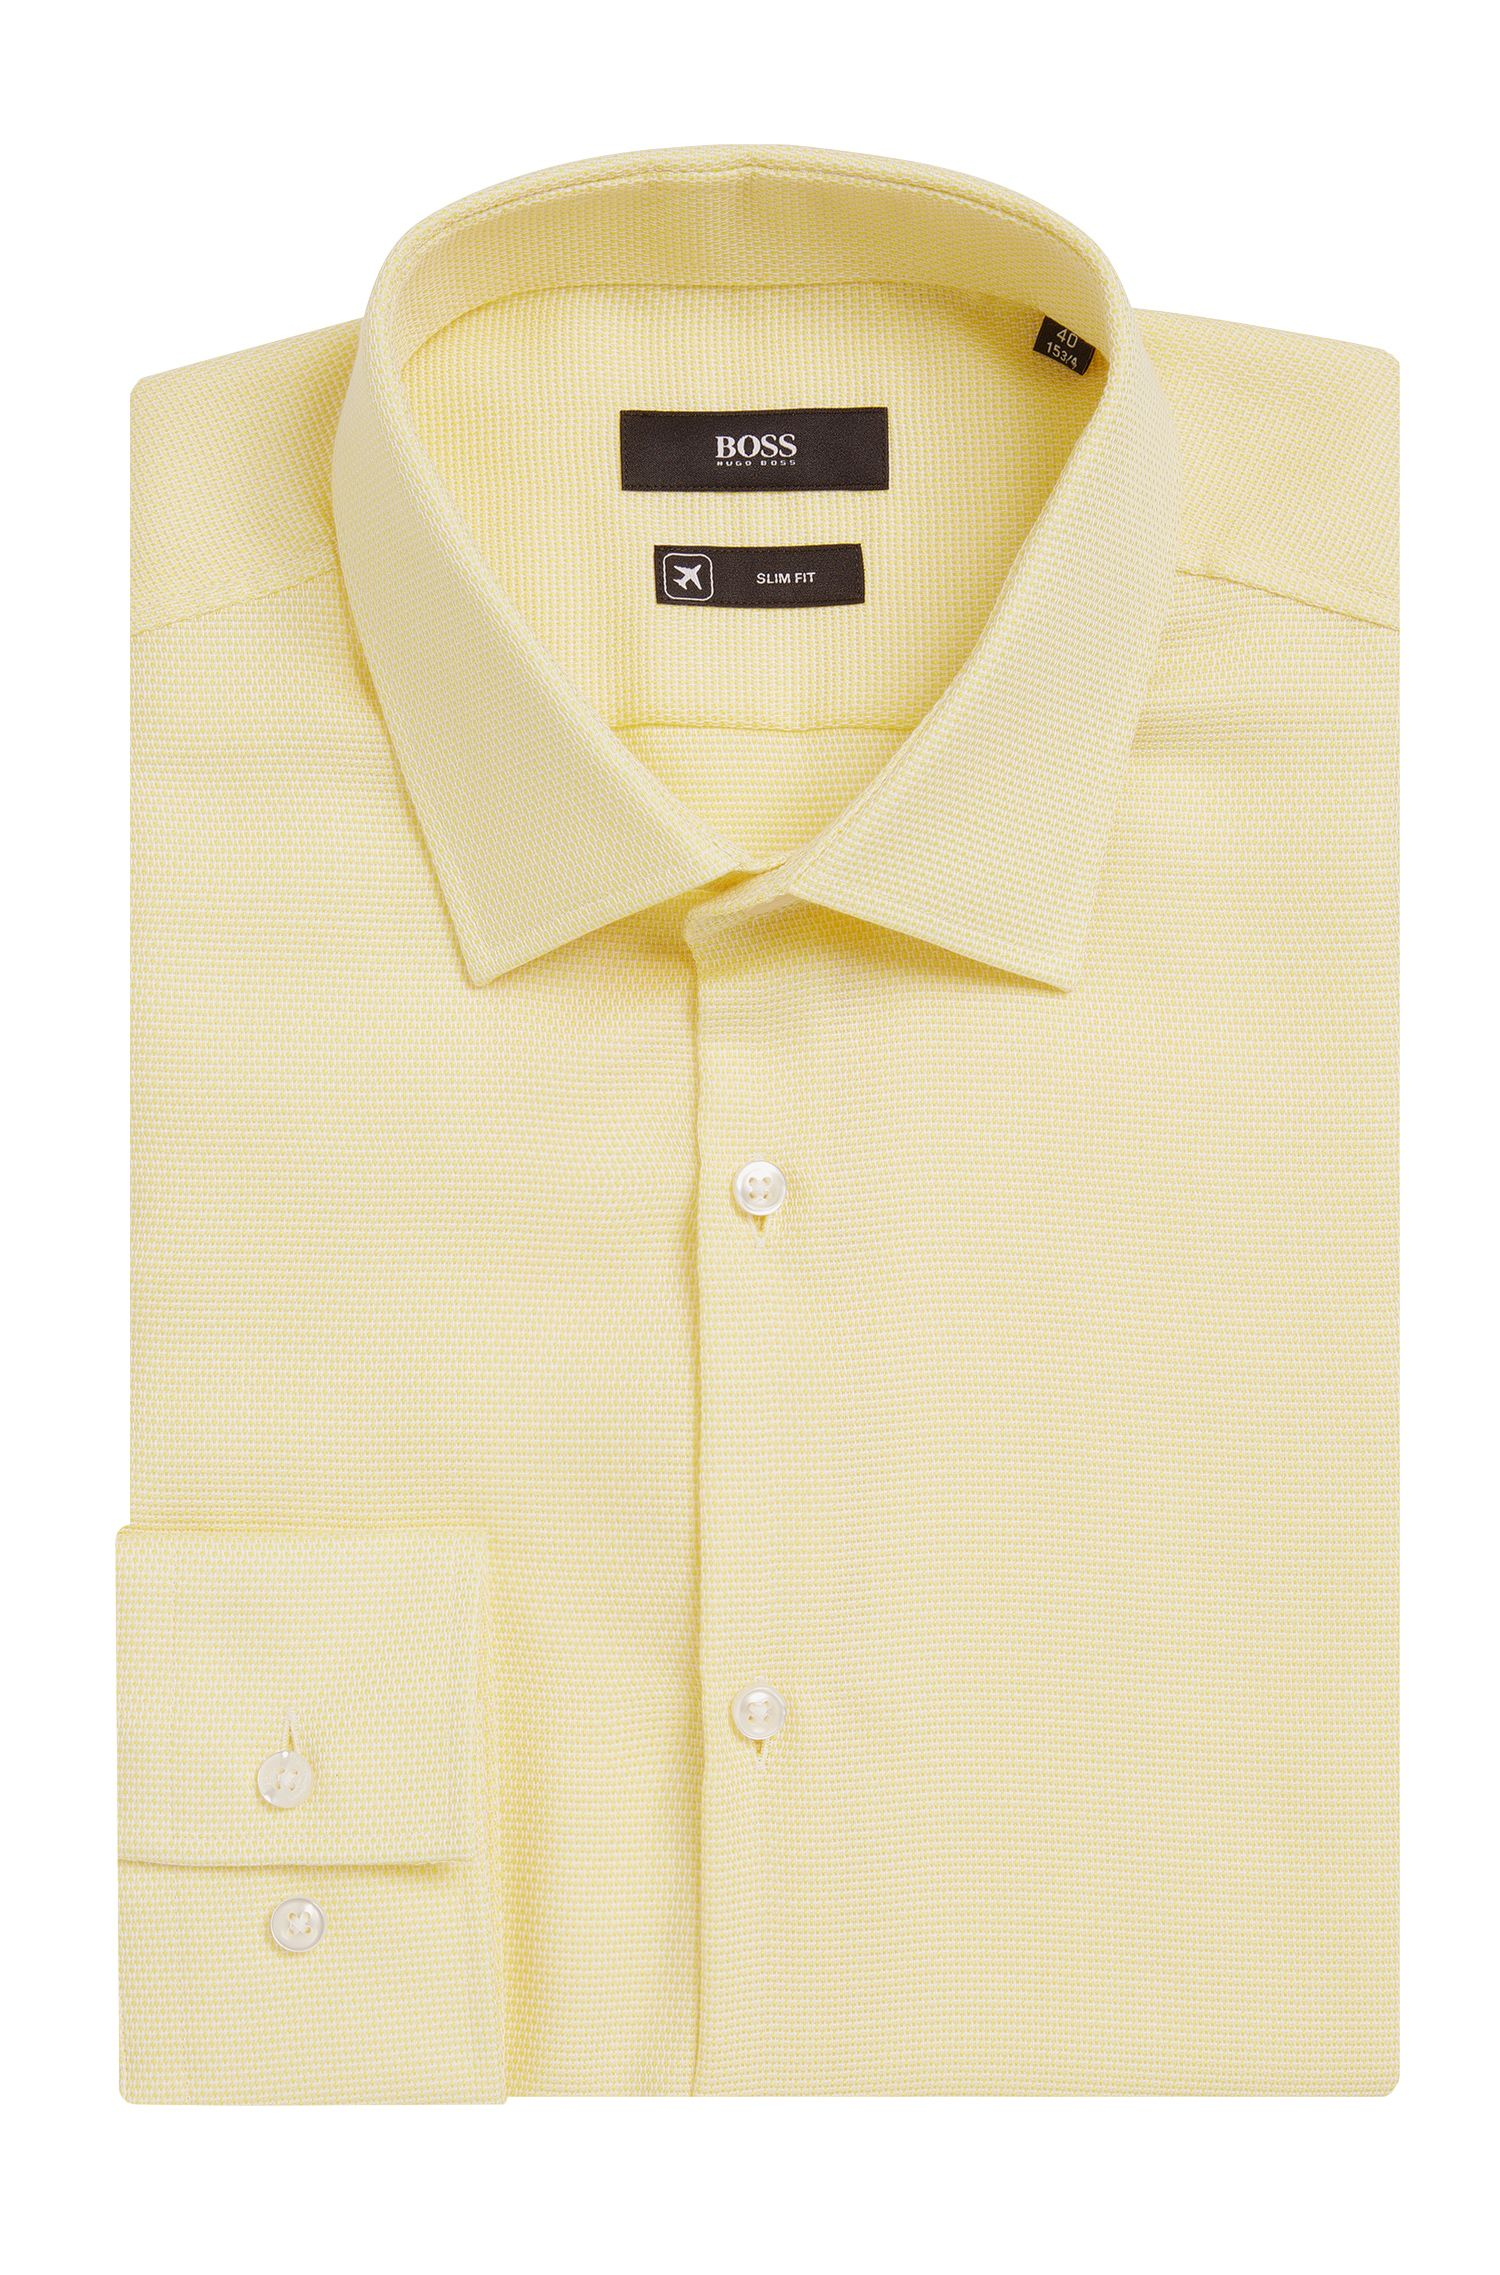 'Jenno' | Slim Fit, Fresh Active Traveler Dress Shirt